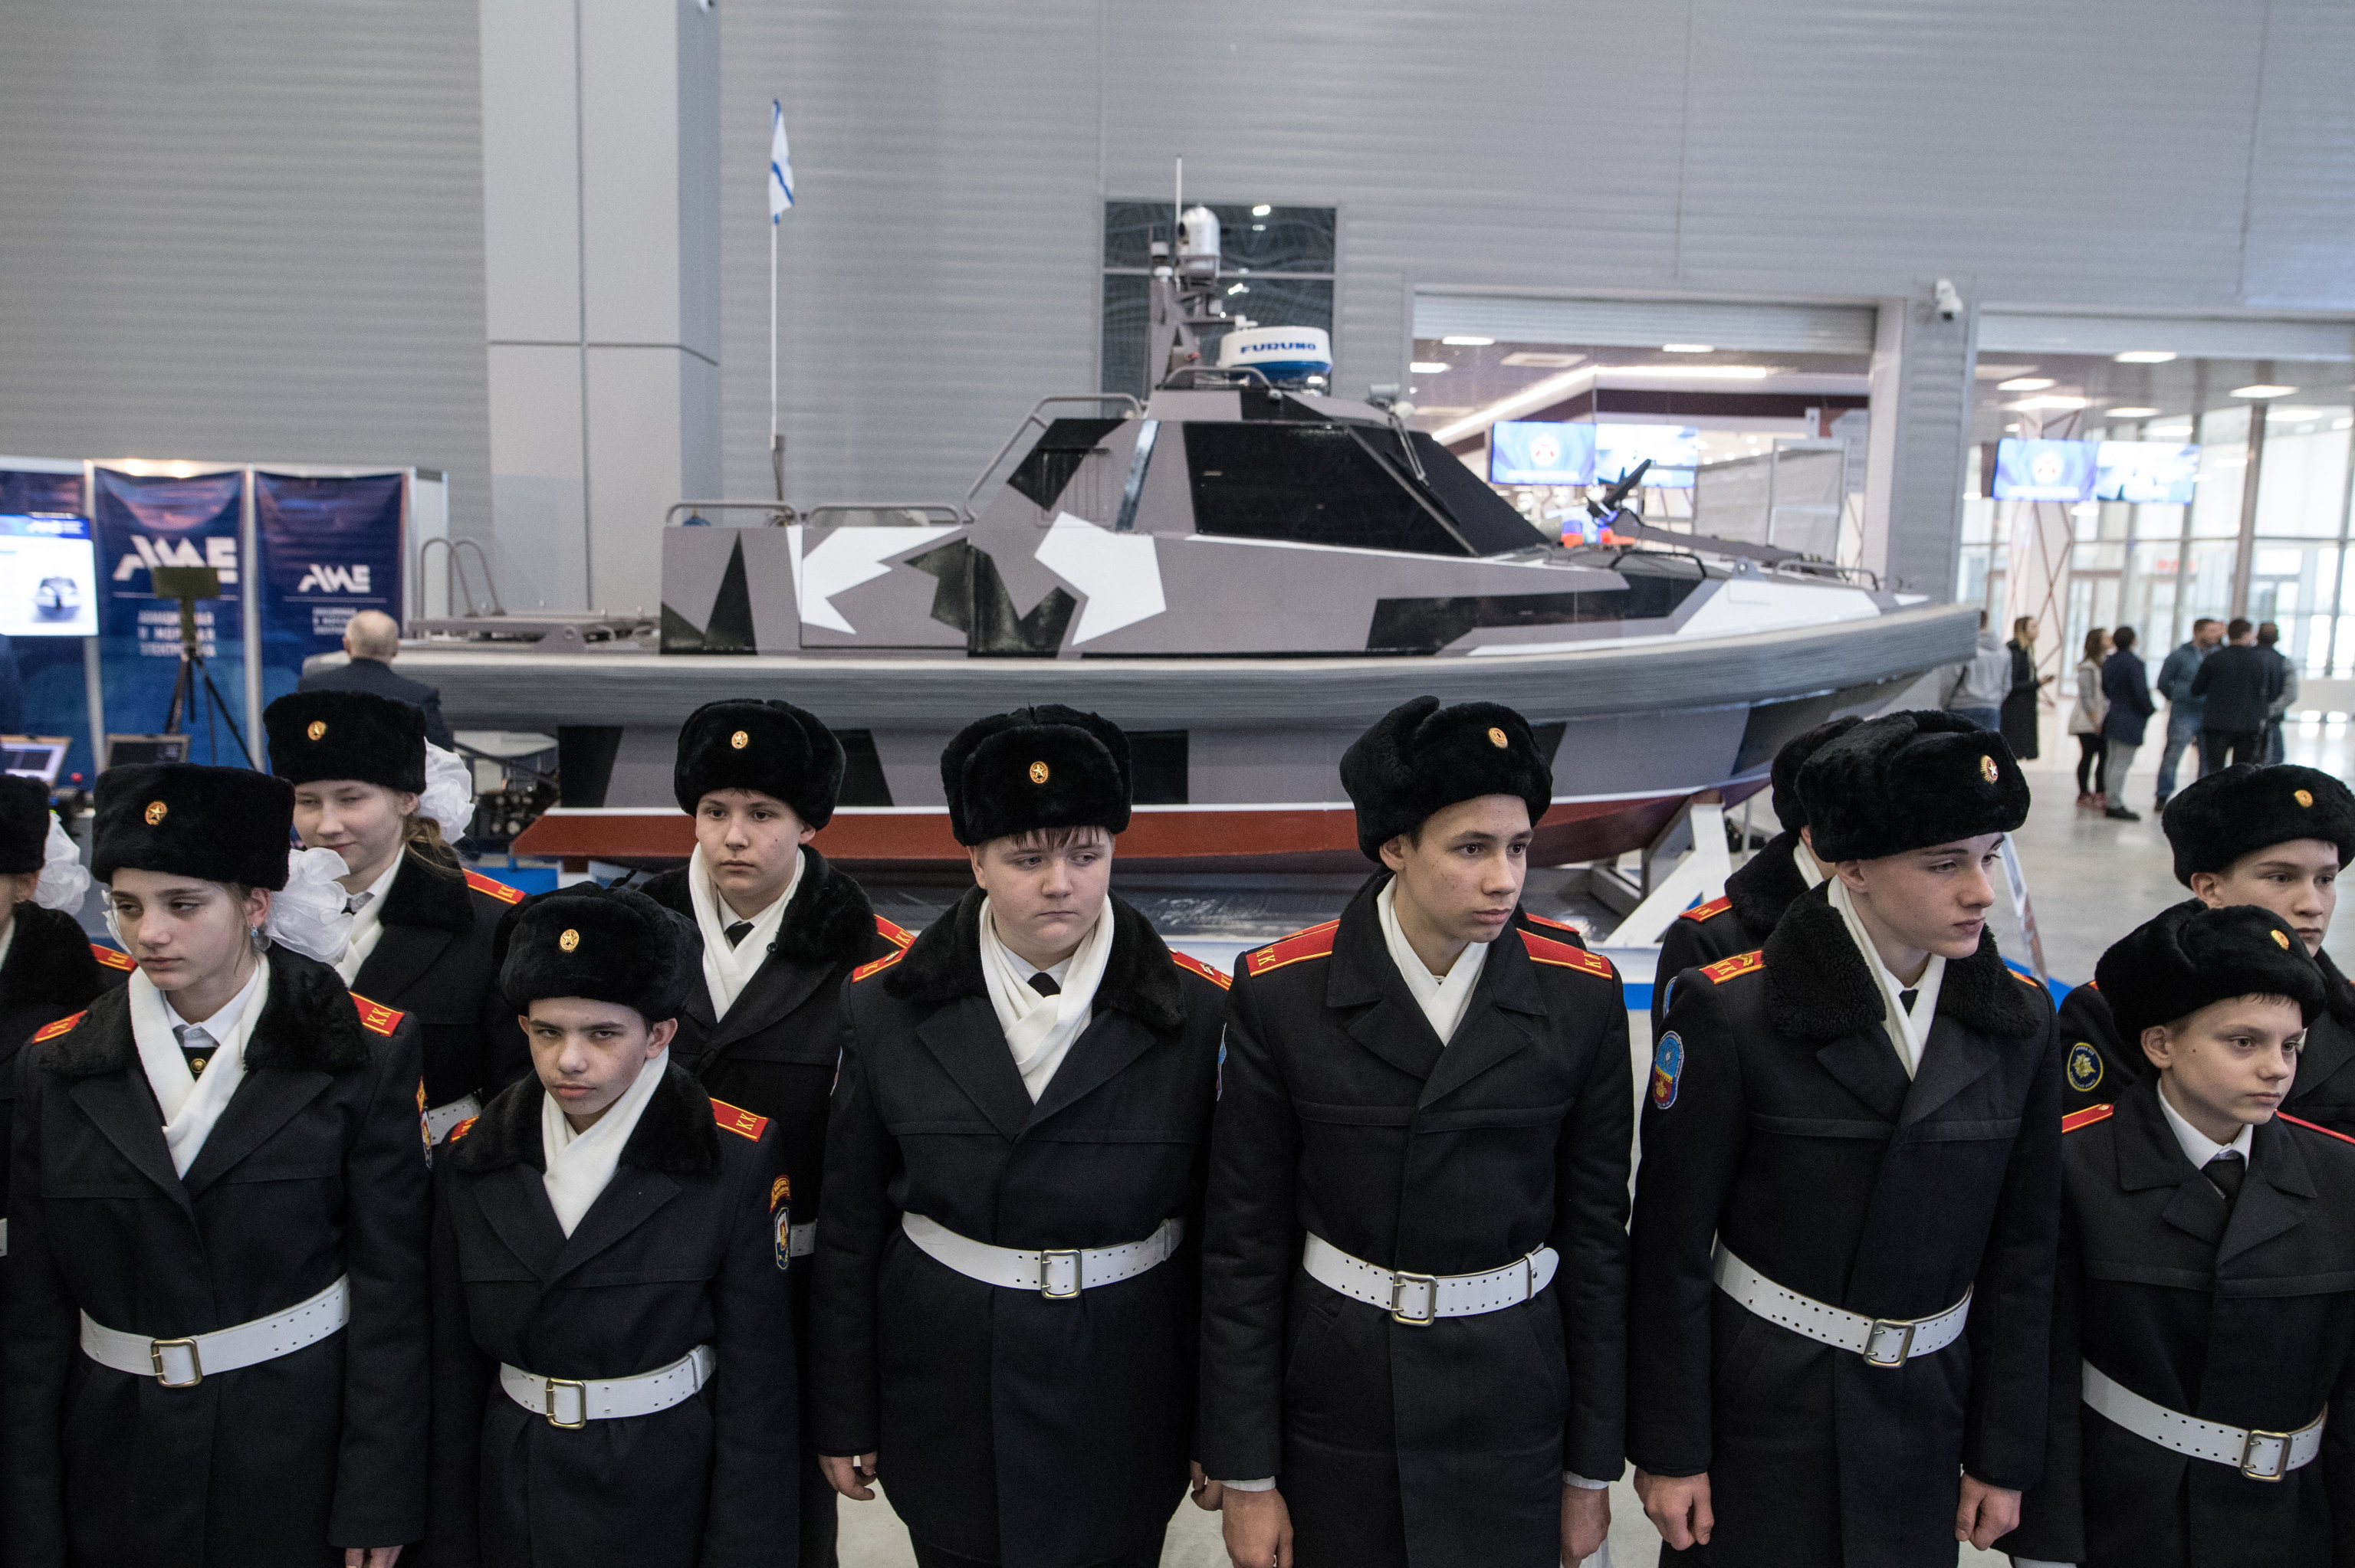 An unmanned boat on display at the Robotization of the Russian Armed Forces conference. File photo